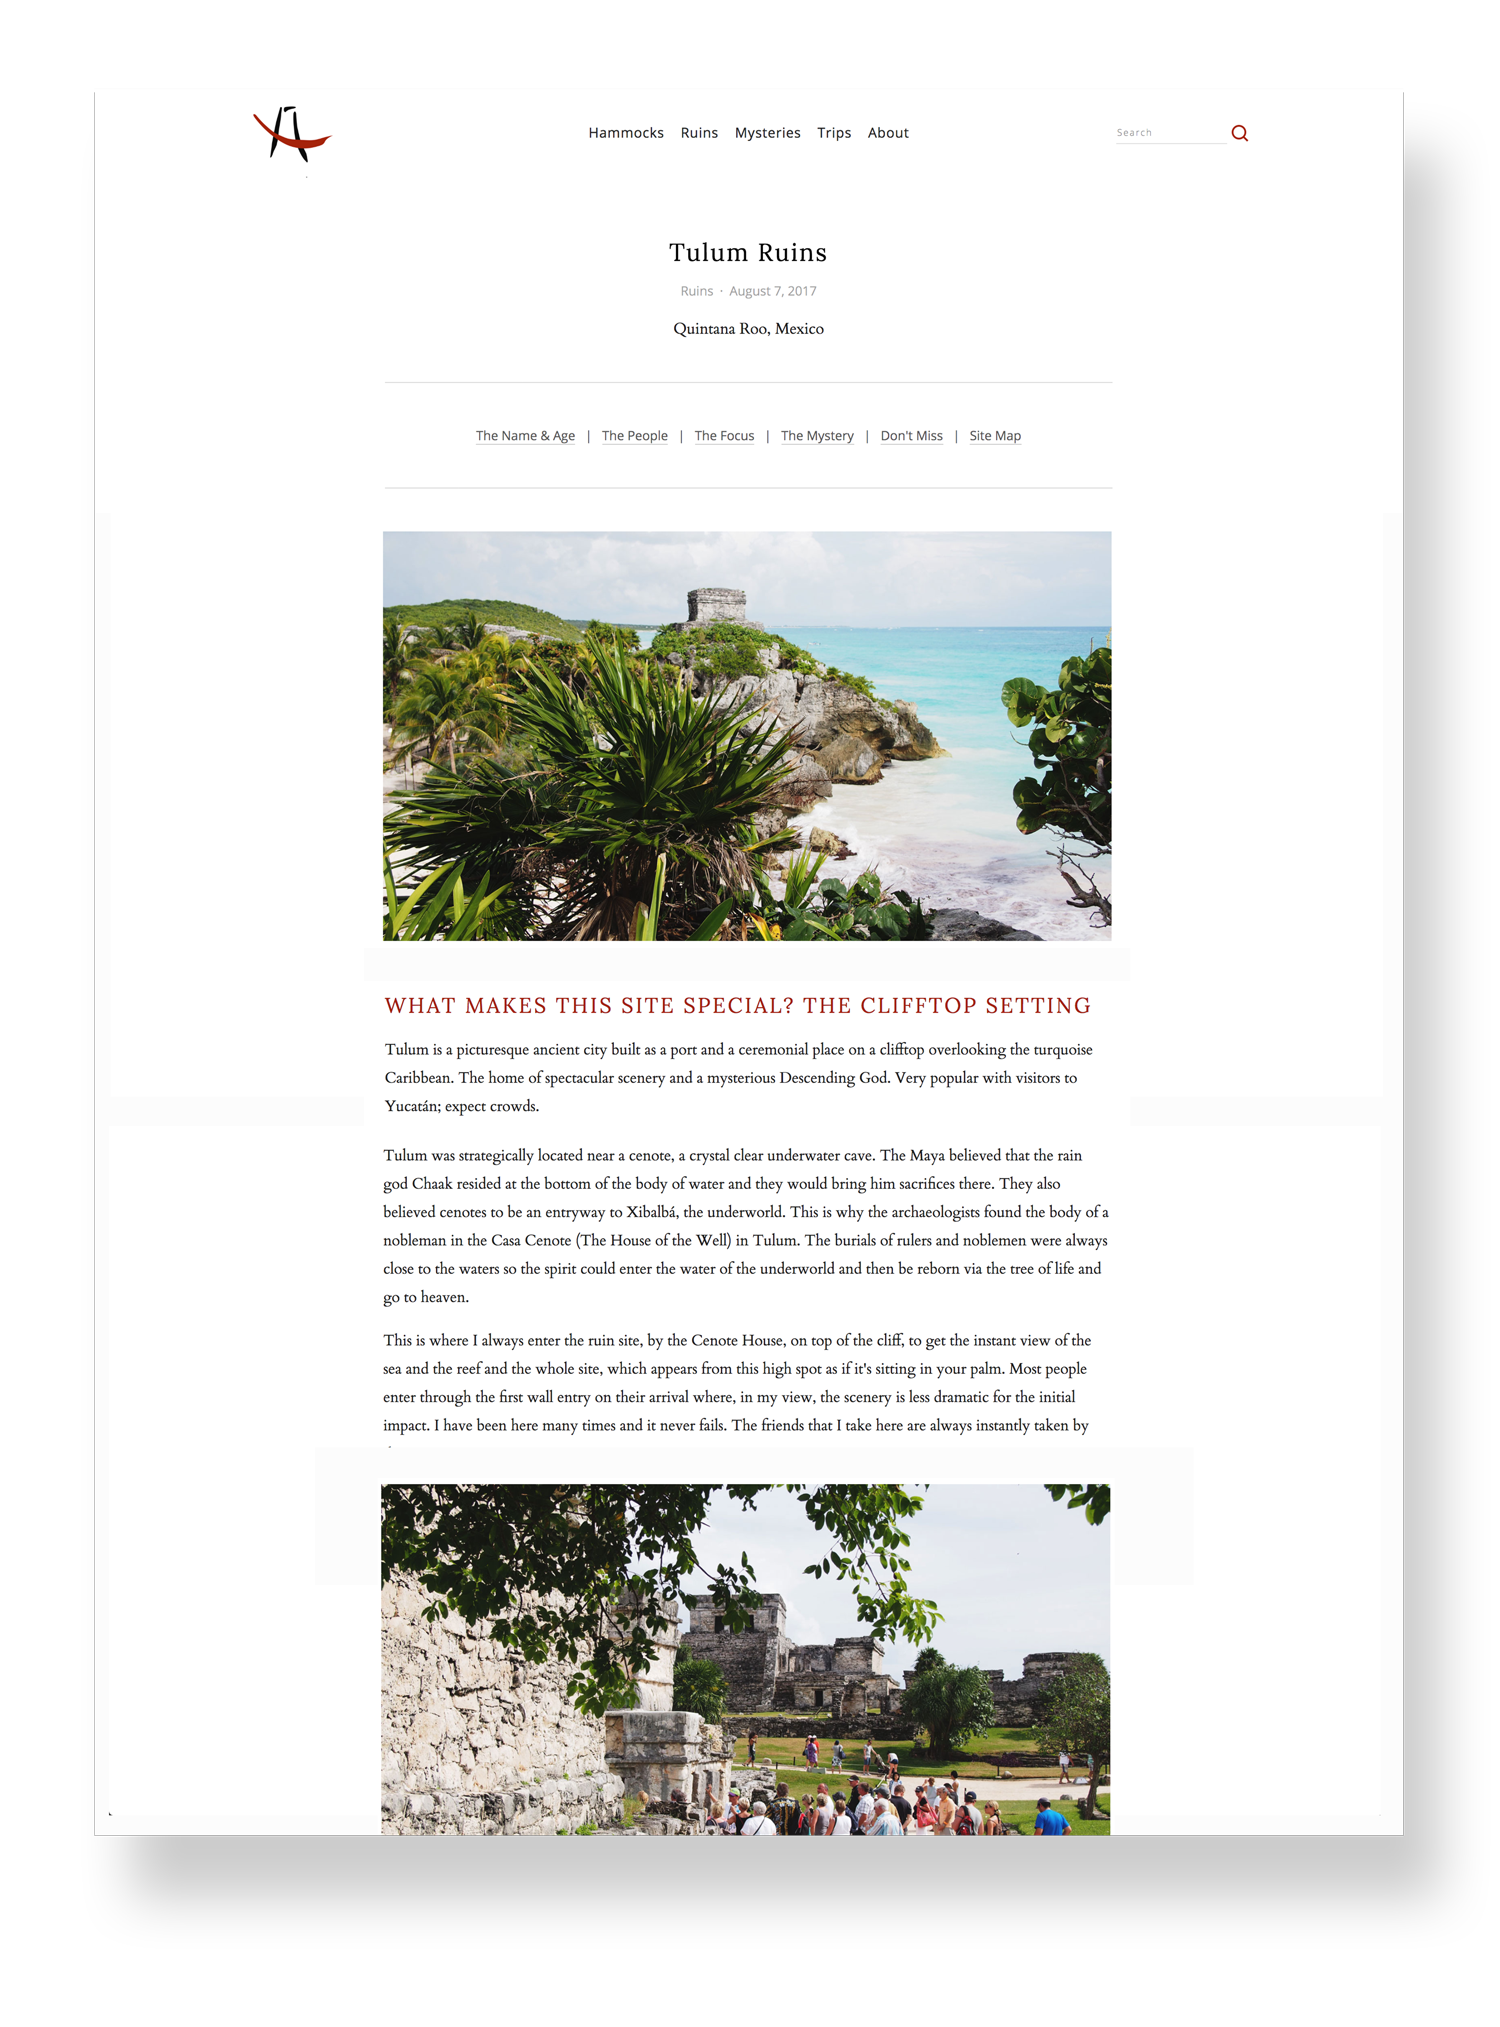 The_Ink_Collective_Creative_Content_Design_Editorial_Agency_Paris_Sydney_Brand_Identity_Web_Design_Creative_Direction_Photography_Travel_Mexico_Hammocks_and_Ruins_Story_1.png